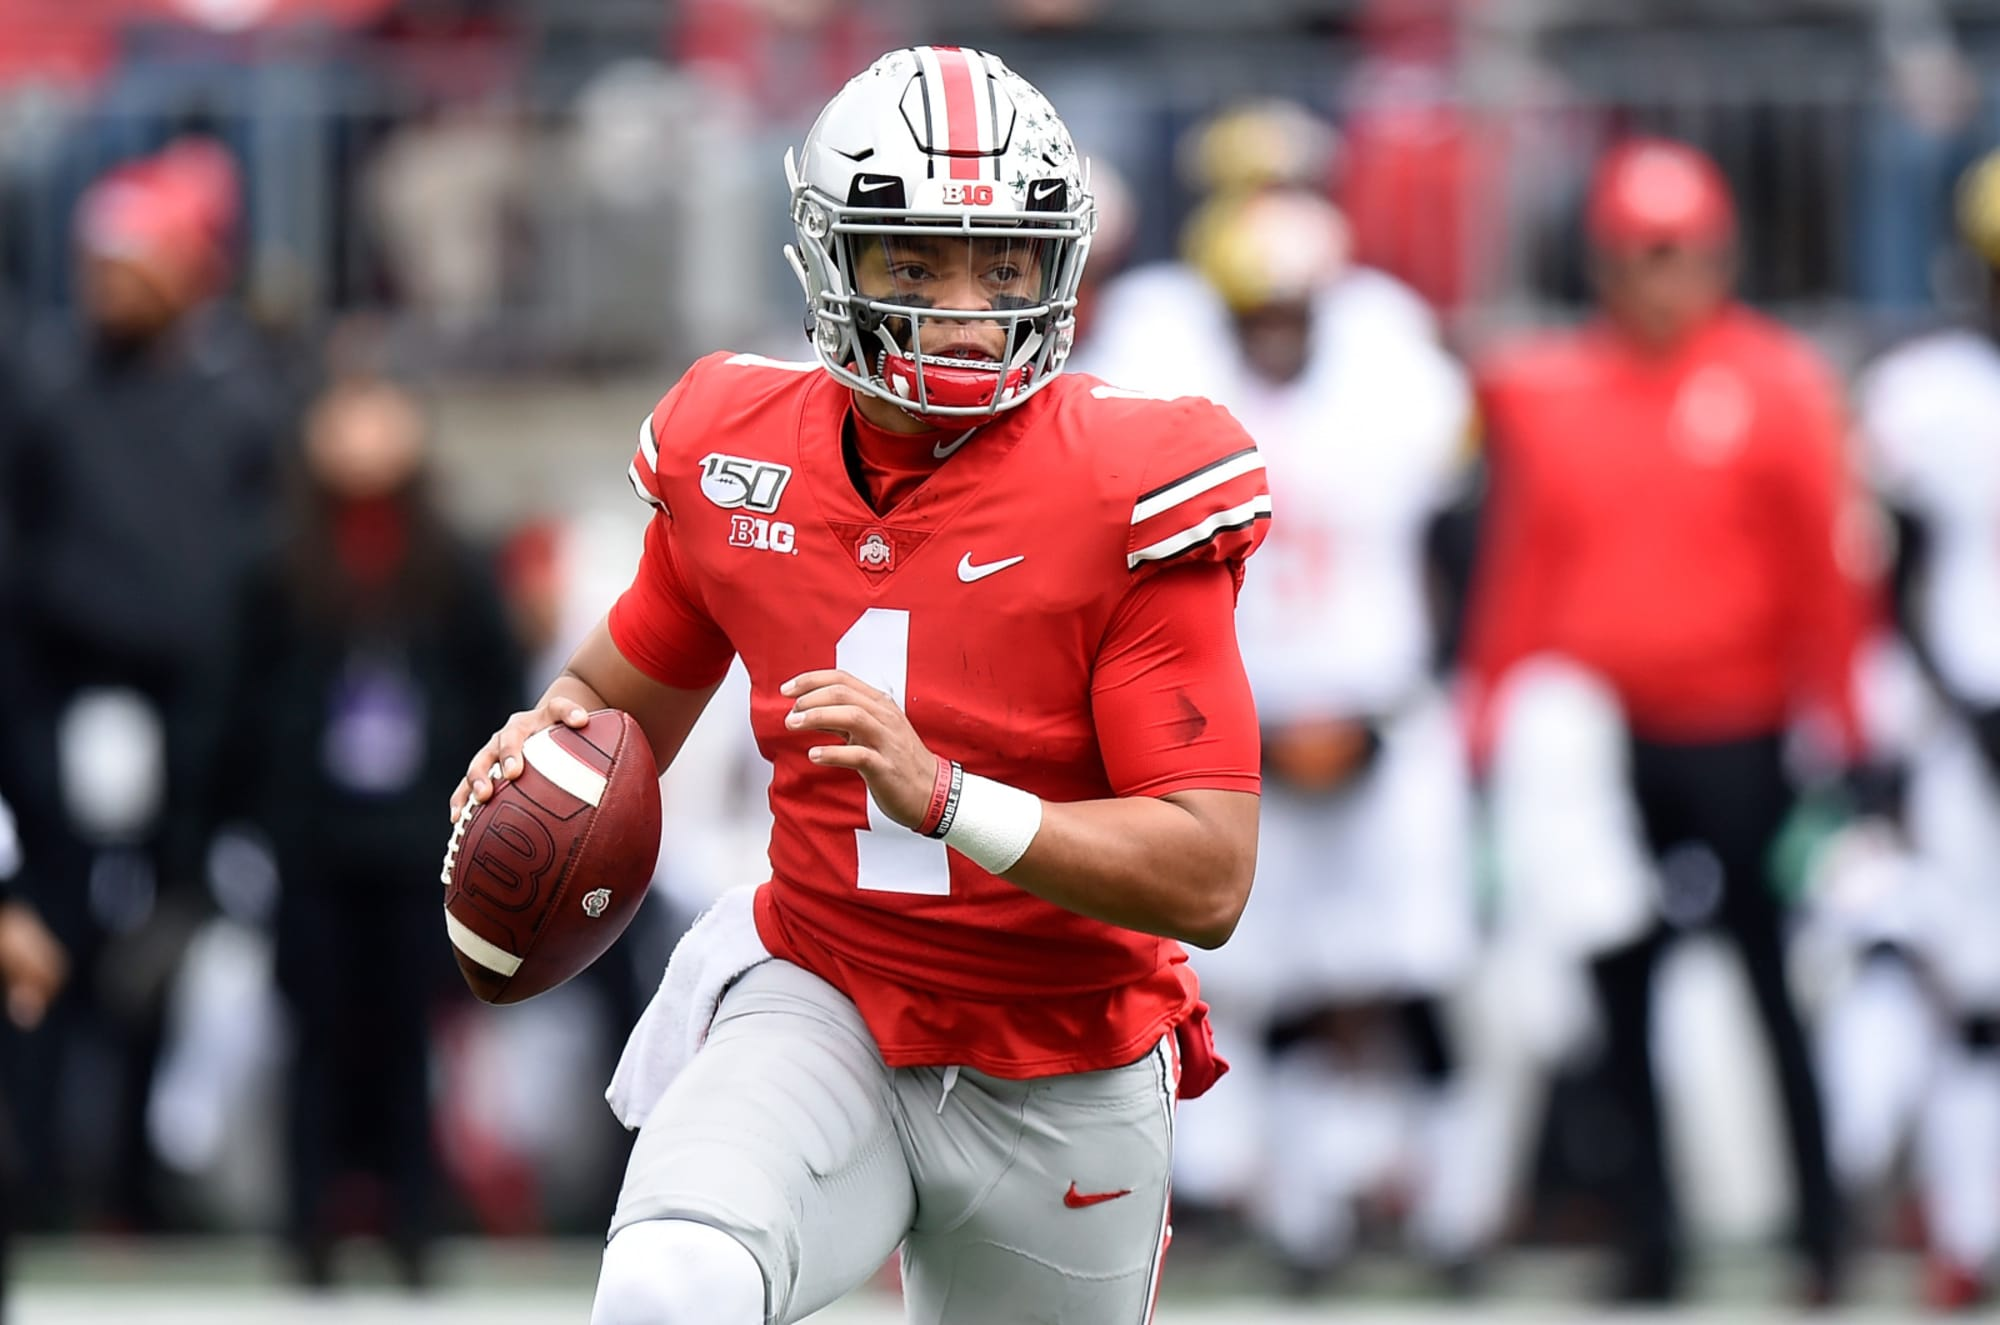 Justin Fields FAQ: 11 things you need to know about the Ohio State QB